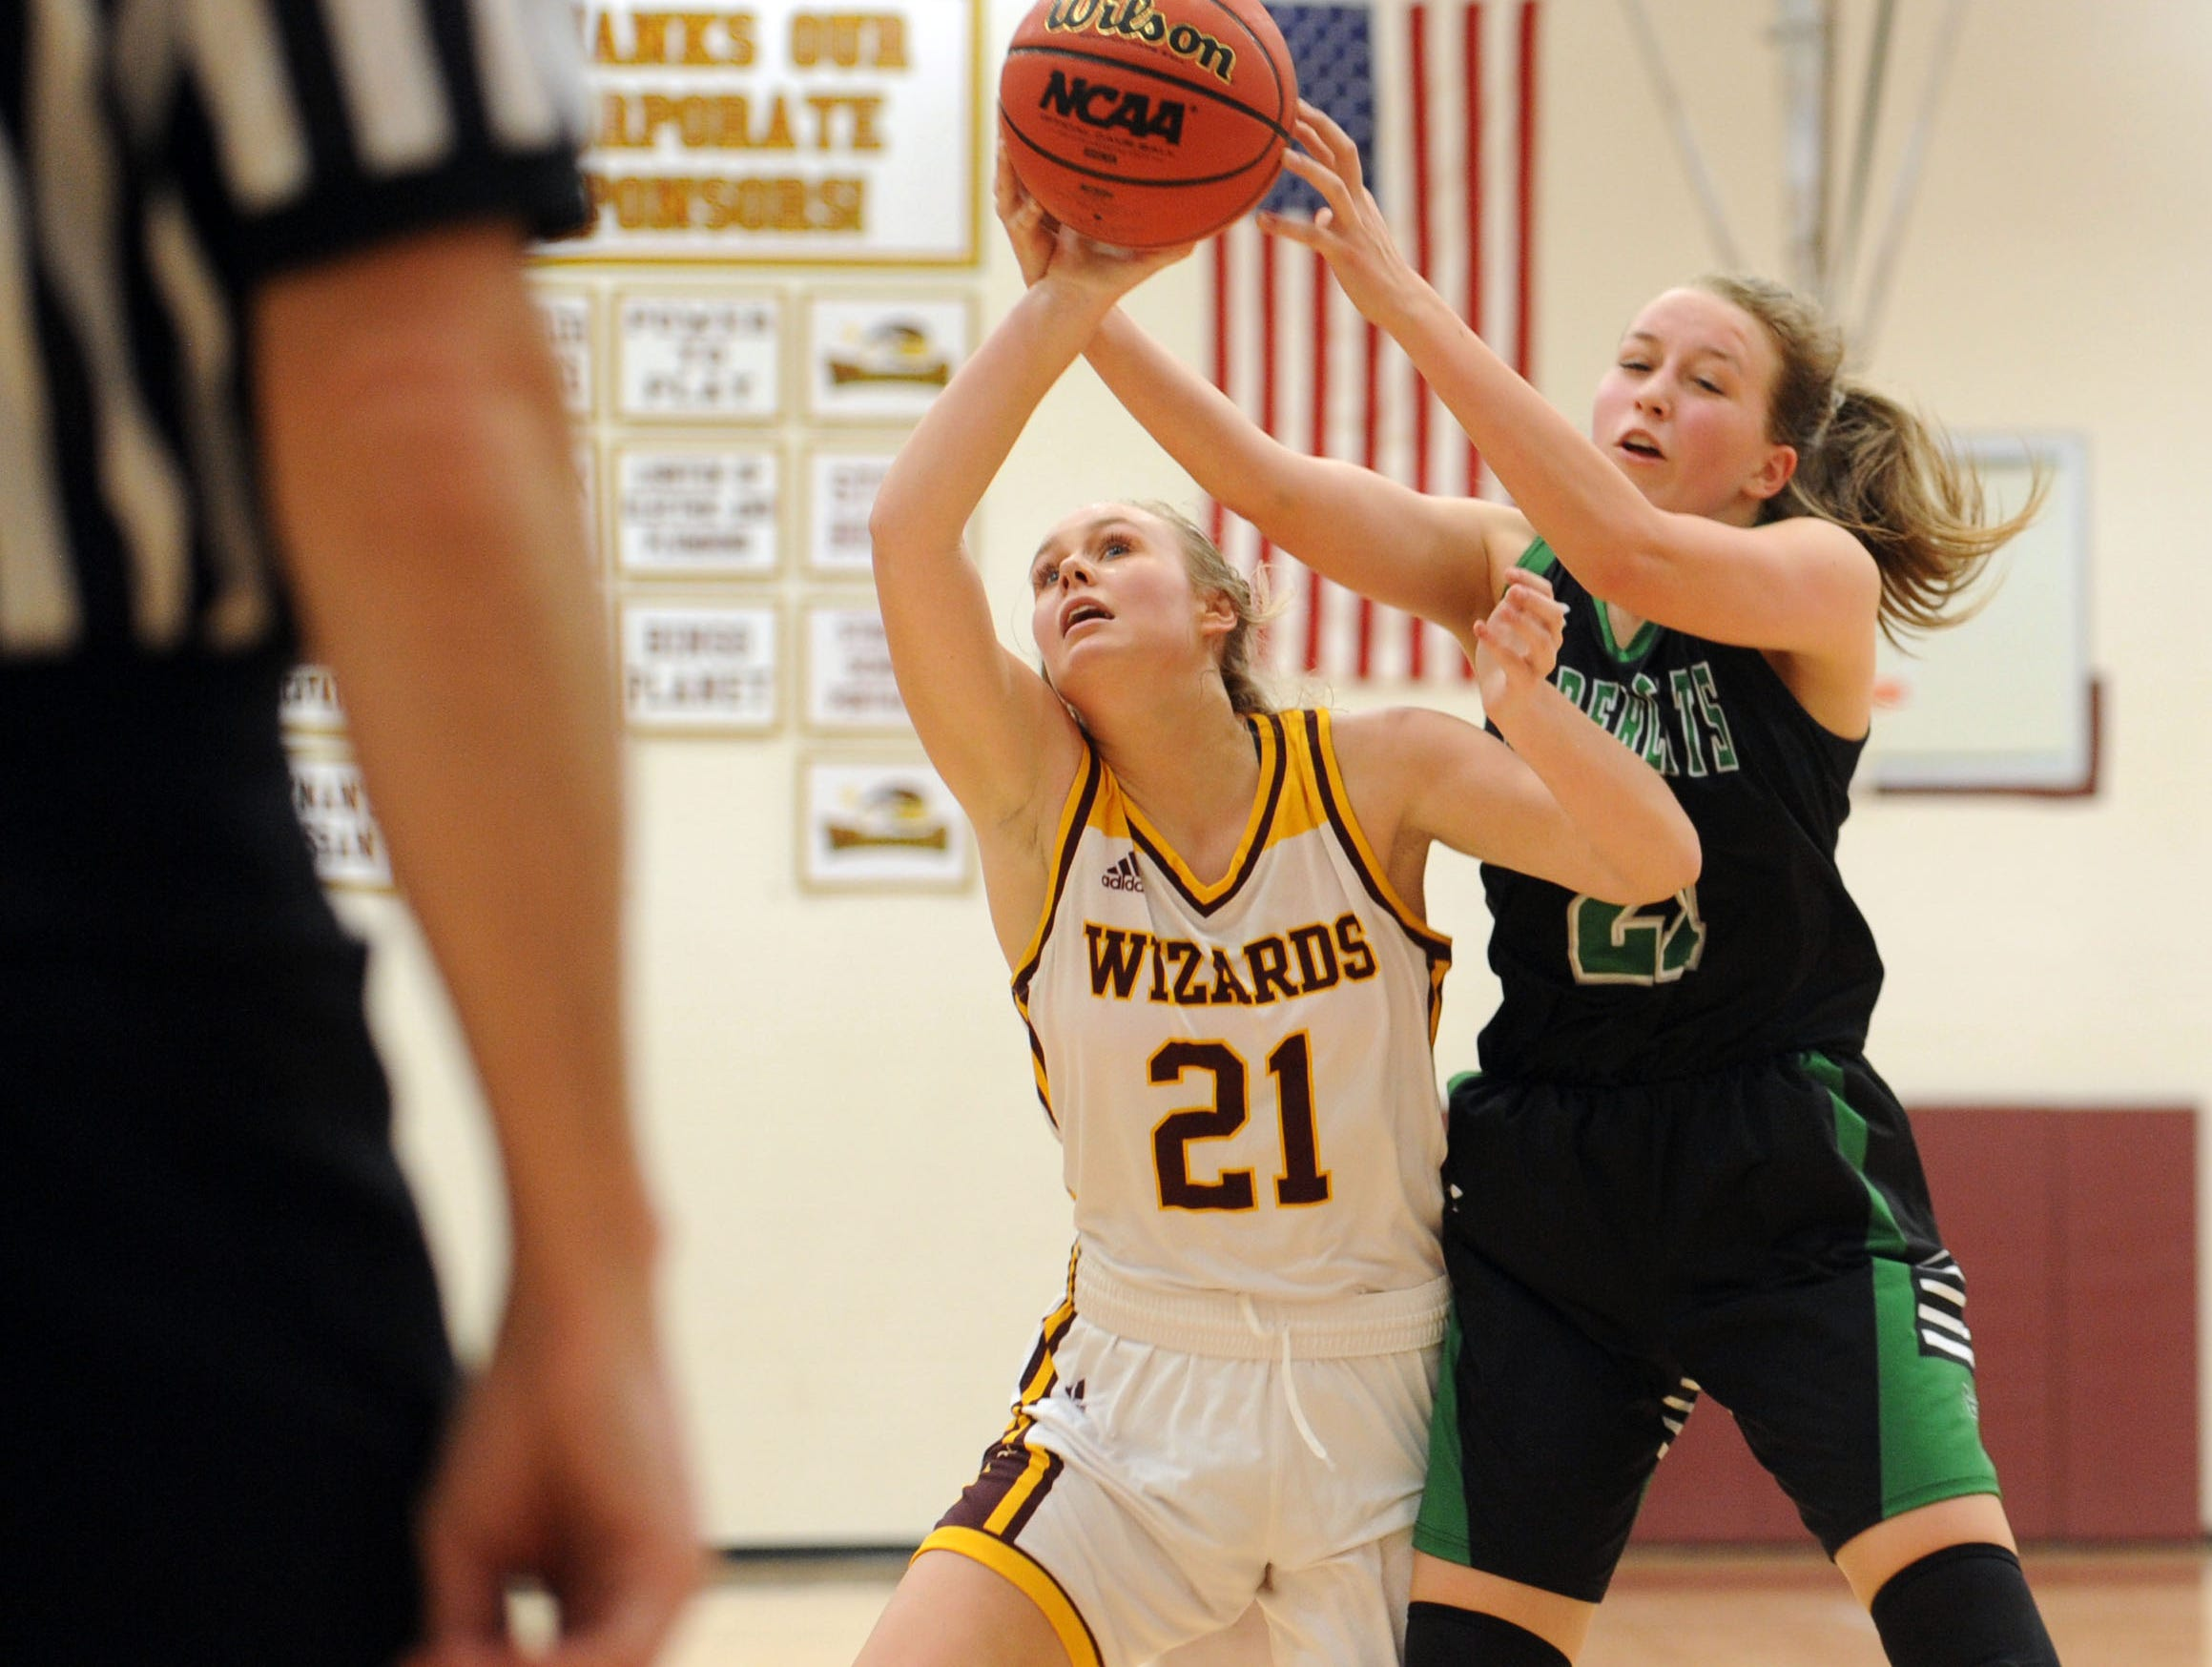 Windsor's Payton Kramer tries to get a rebound from Fossil Ridge's Kaysen Hobbs during the game Thursday at Windsor High School.